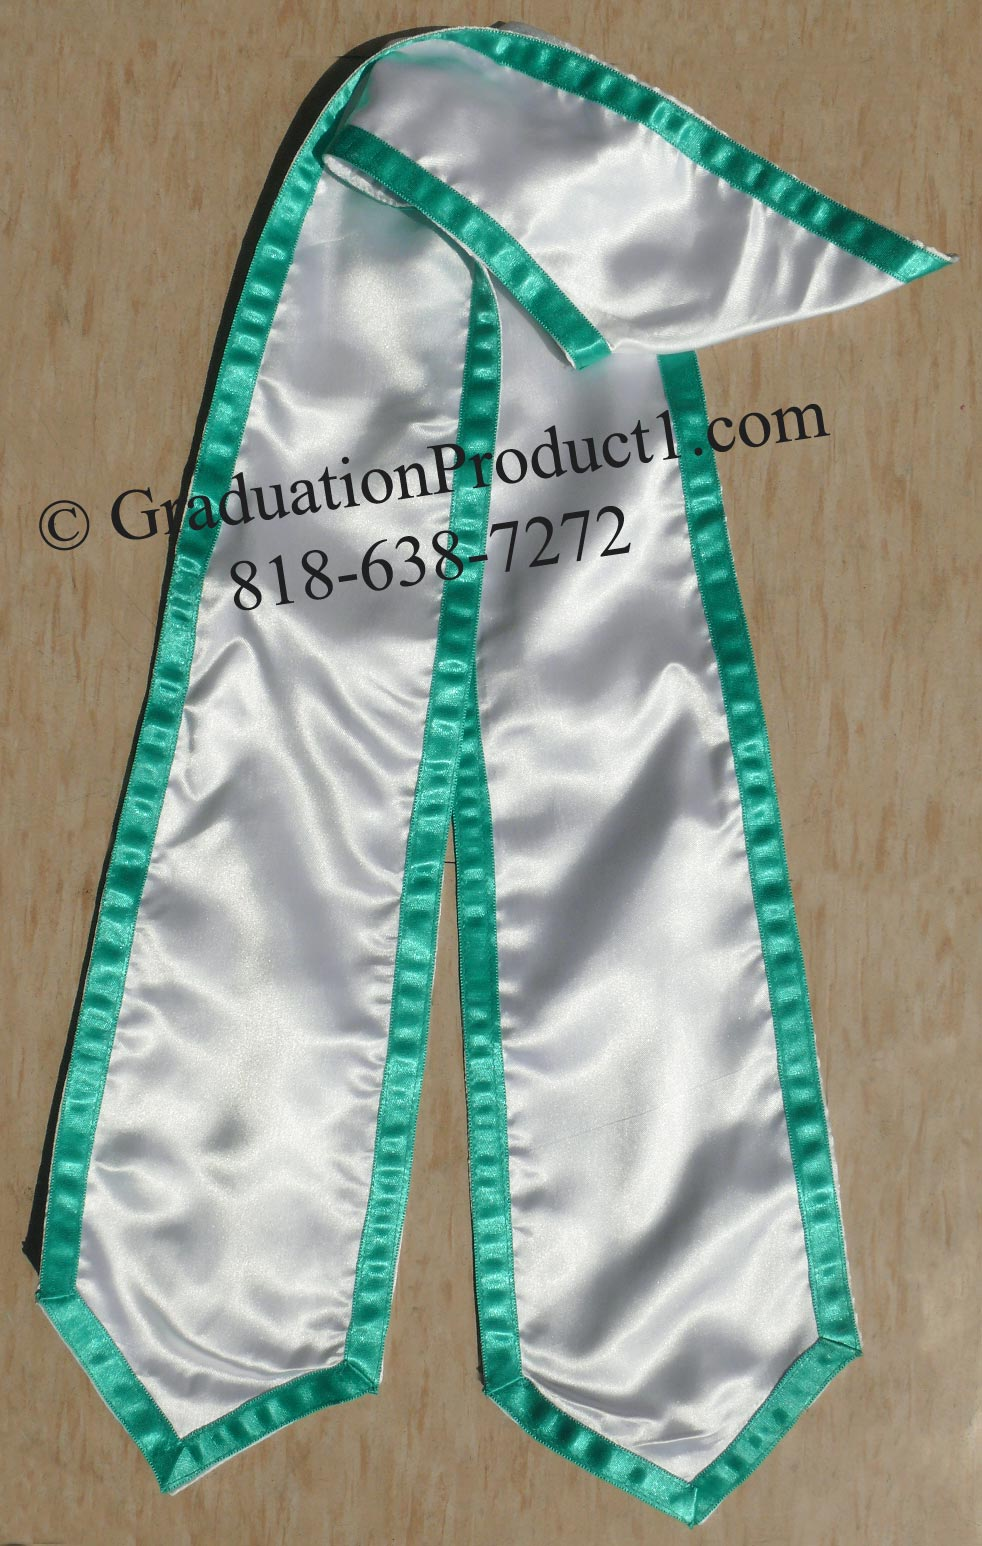 White Graduation Stole With Teal Trim